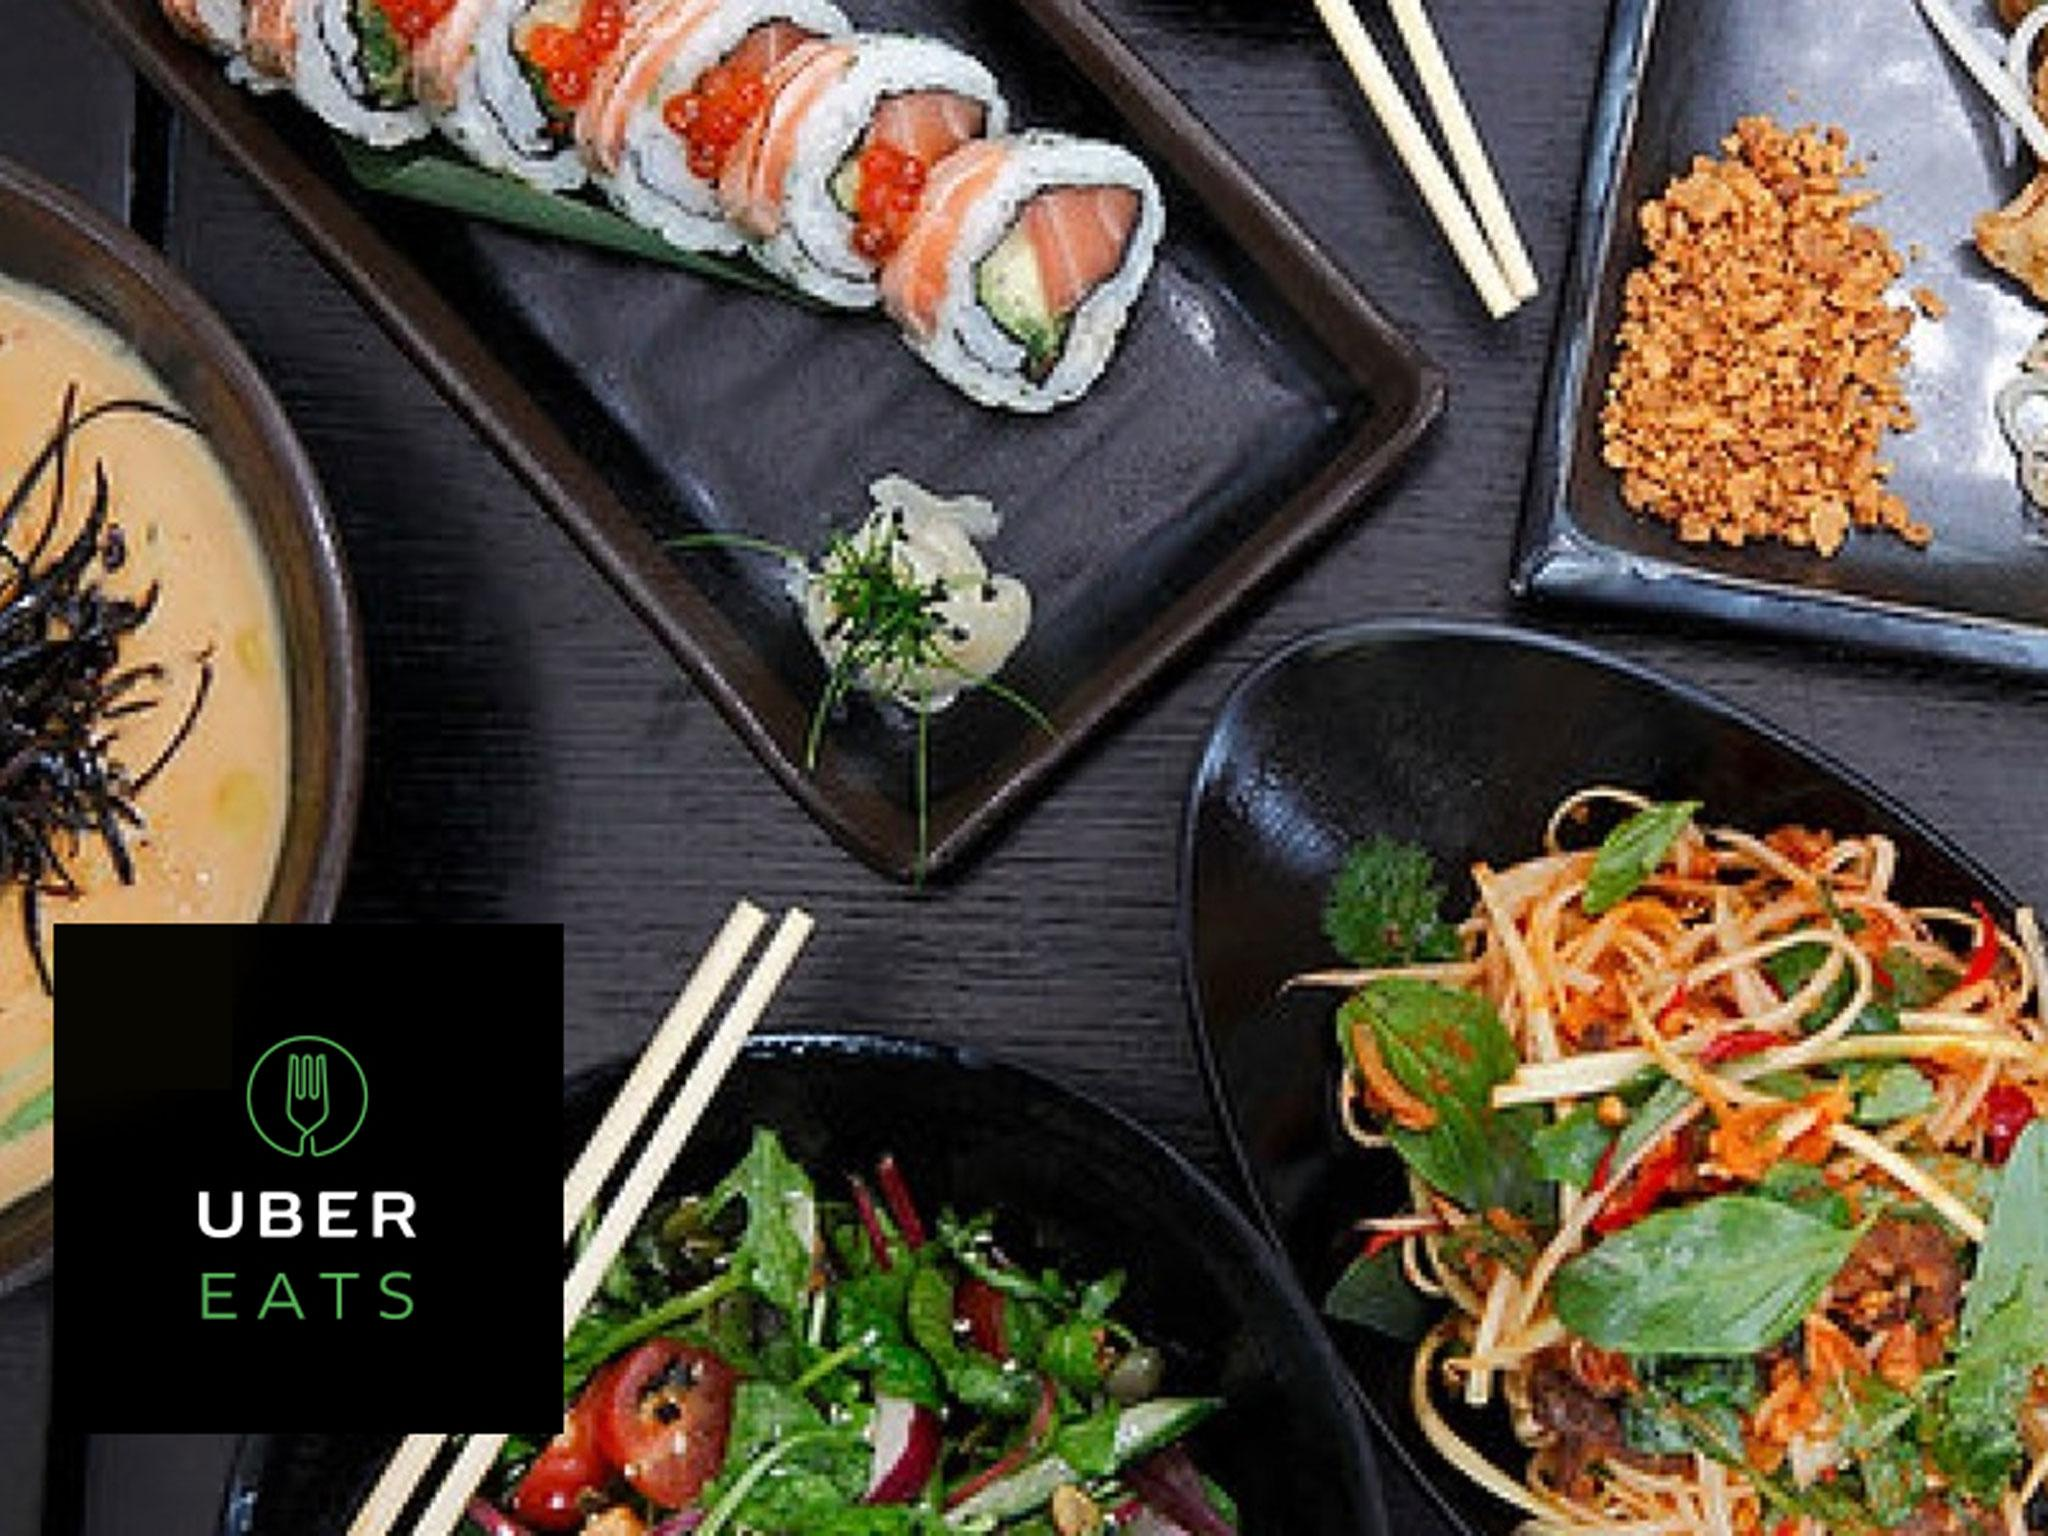 Uber eats rolls out in auckland restaurant caf uber eats rolls out in auckland forumfinder Choice Image